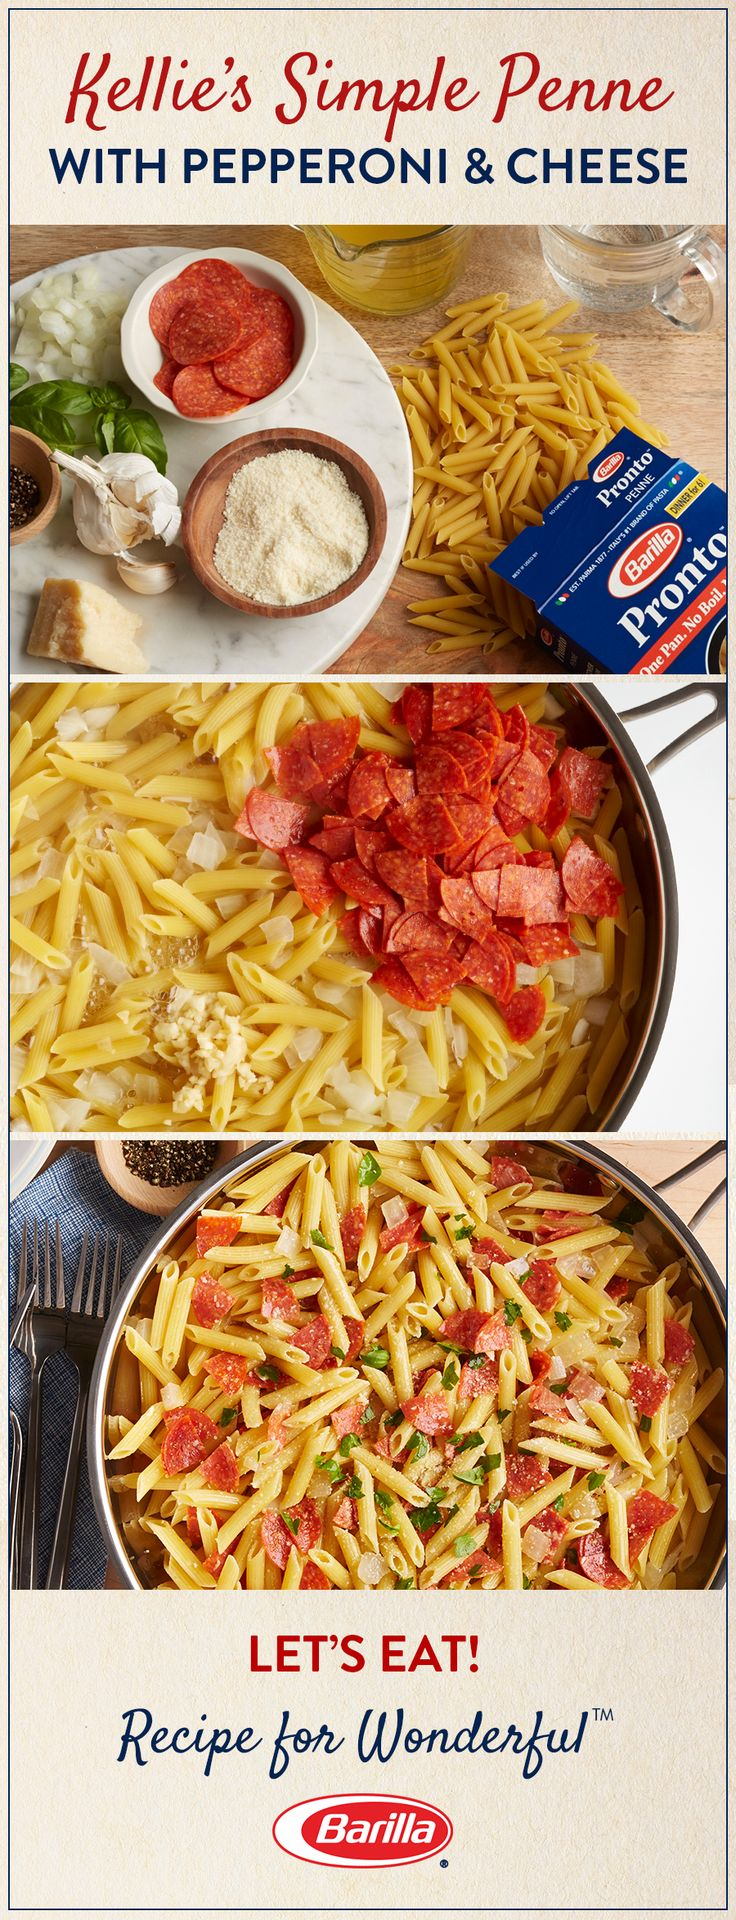 Takeout isn't your only option for a speedy dinner. All of your family's favorite pizza flavors – pepperoni, basil, and cheese – combined with deliciously al dente Barilla penne pasta – and no need to wait for delivery. Try this easy recipe for Kellie's Simple Penne with Pepperoni & Cheese, made in one pan and ready in just 15 minutes.